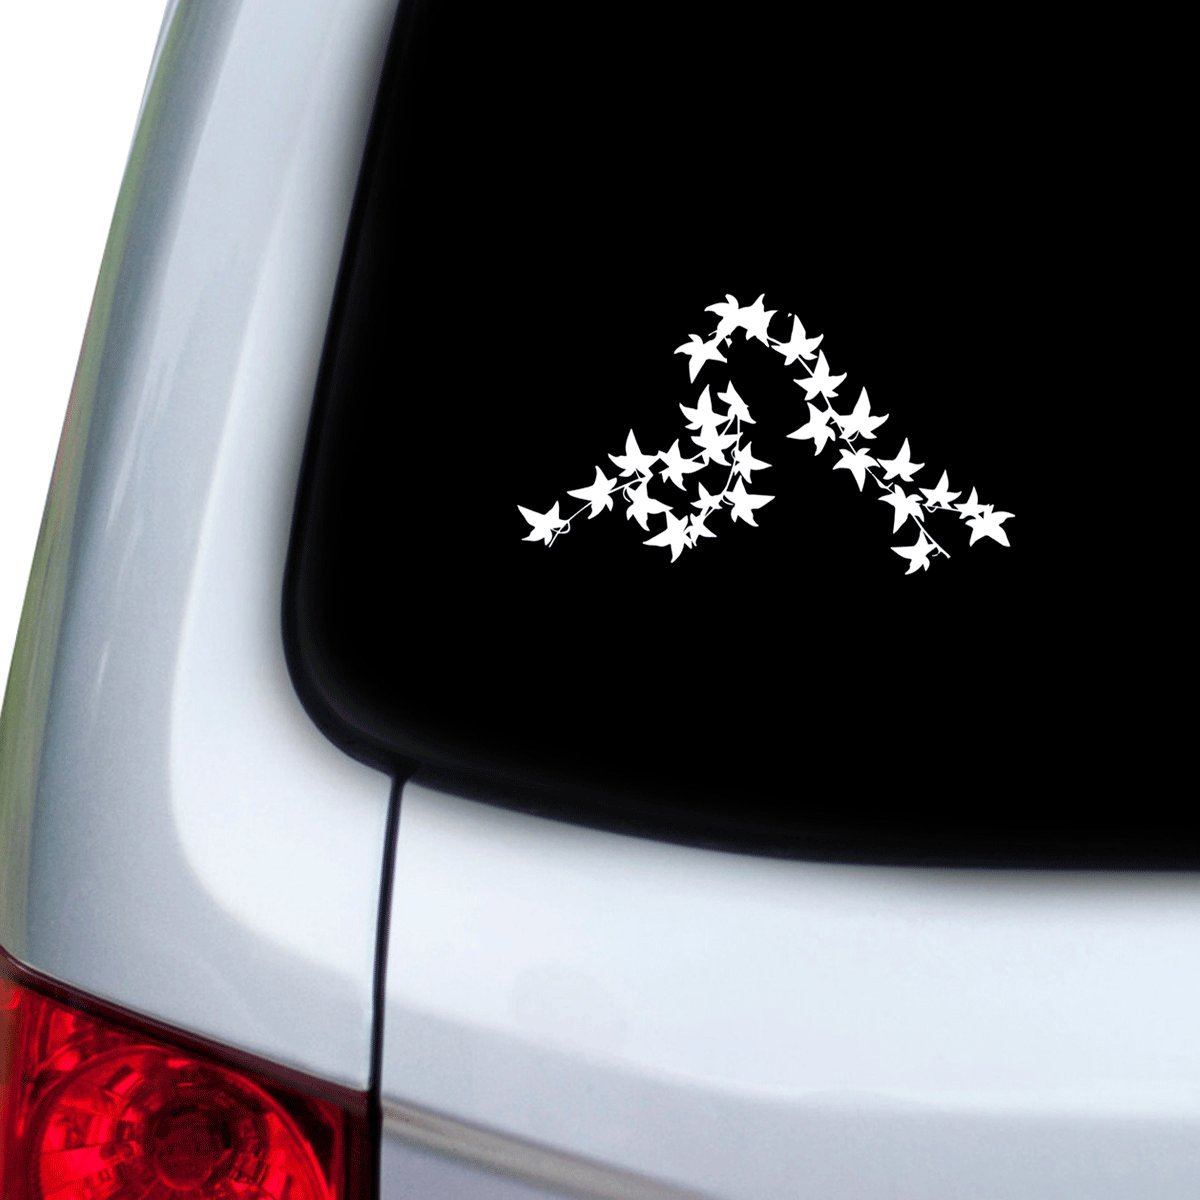 StickAny Car and Auto Decal Series Ivy Plants 4 Sticker for Windows Doors White Hoods